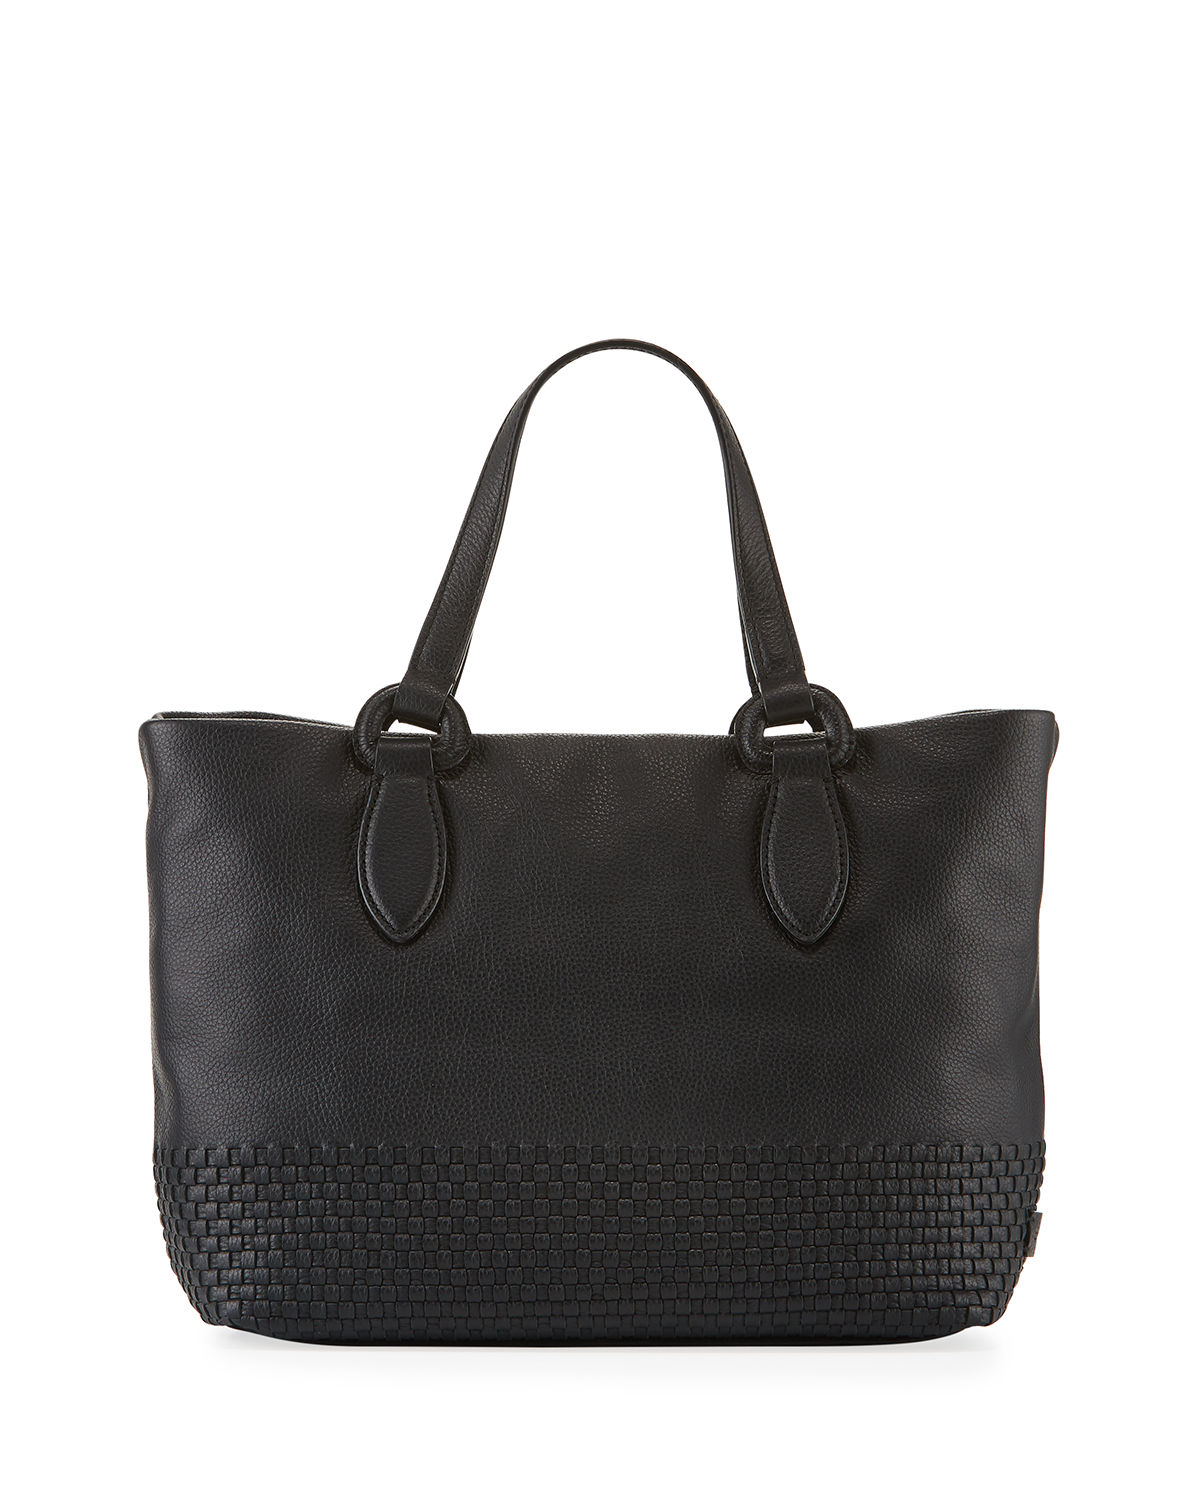 Cole Haan Totes BETHANY SMALL WOVEN LEATHER TOTE BAG